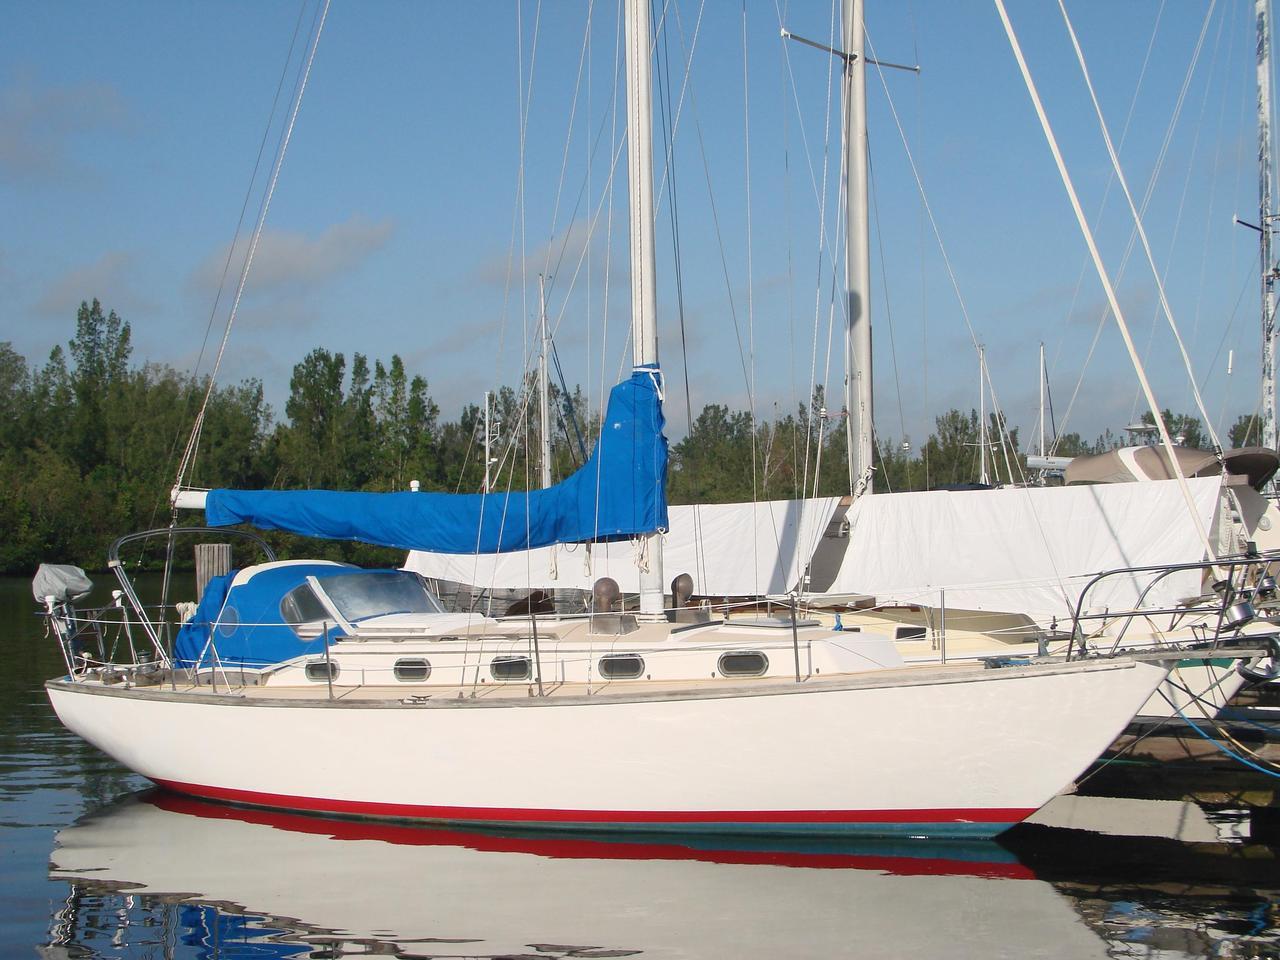 1981 Used Cape Dory 36 Cutter Sailboat For Sale - $64,900